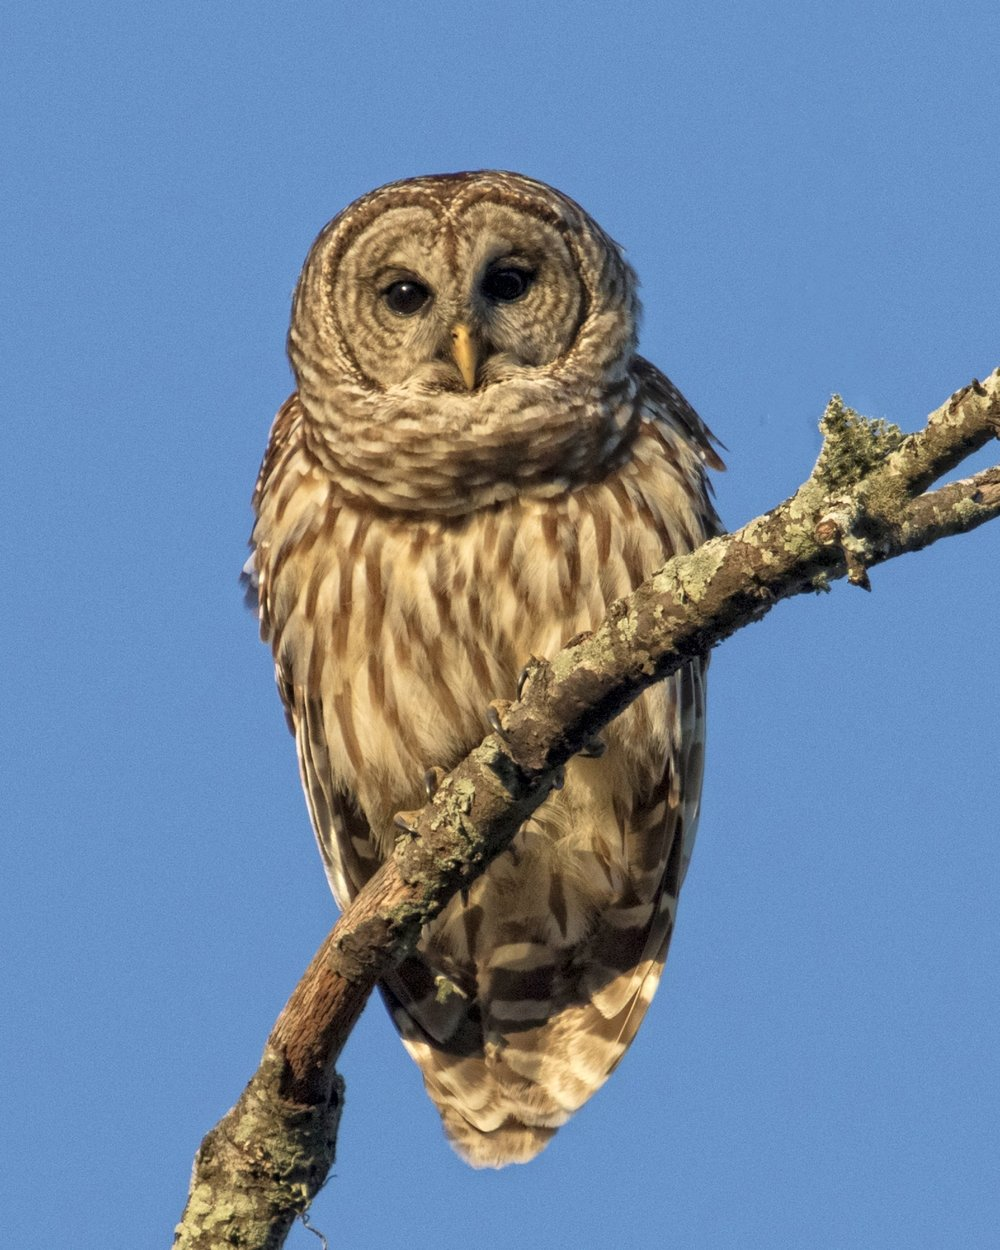 I used a bird call to bring this Barred Owl close to investigate